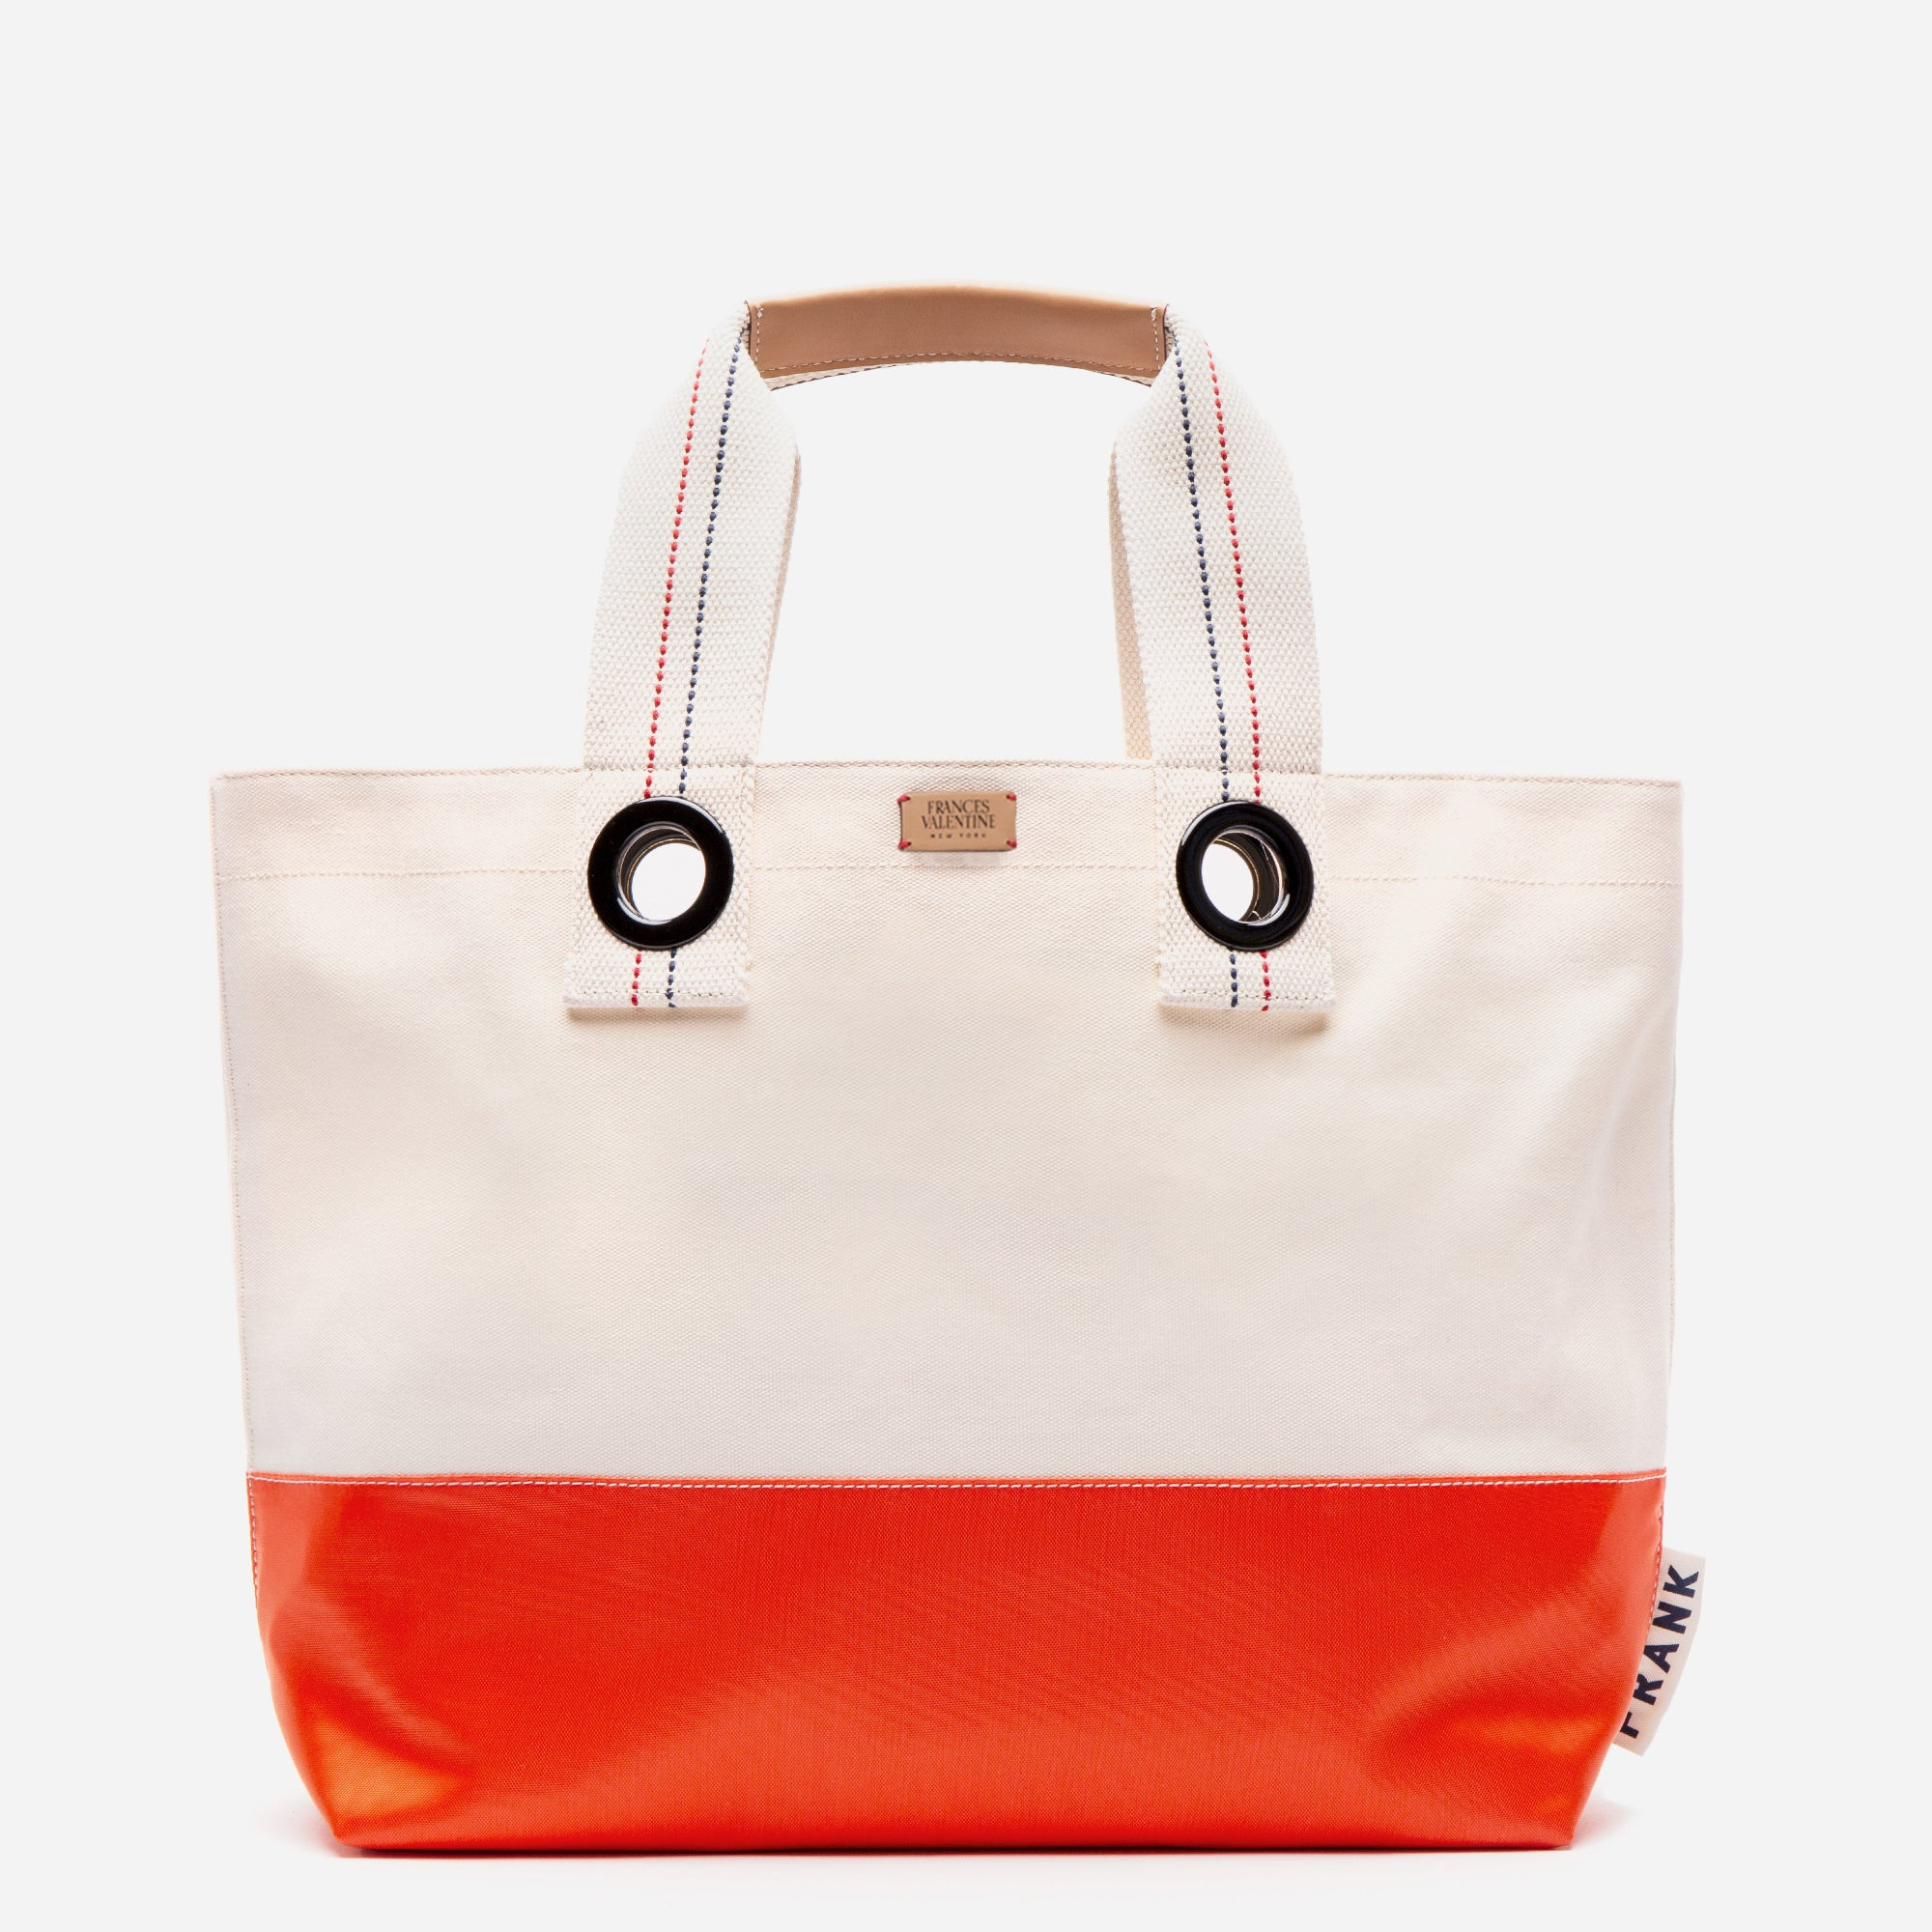 Frank Men's Canvas Weekend Tote Natural Orange - Frances Valentine